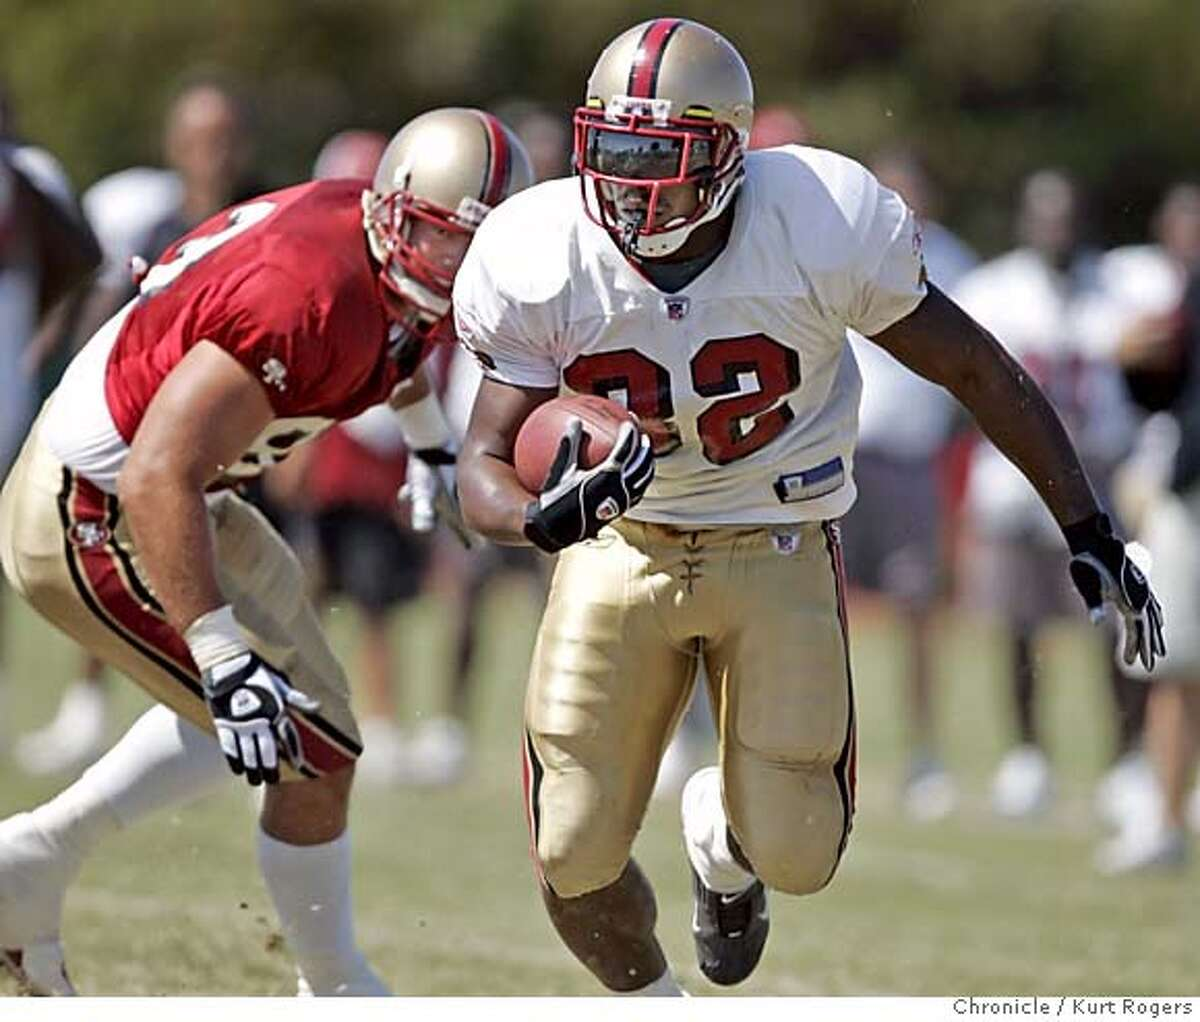 Kevan Barlow brakes open for his longest run of the day. The San Francisco 49ERS held a scrimmage at there training camp in Santa Clara . 49ERS_0175_kr.JPG 8/6/05 in Santa Clara,CA. KURT ROGERS/ MANDATORY CREDIT FOR PHOTOG AND SF CHRONICLE/ -MAGS OUT